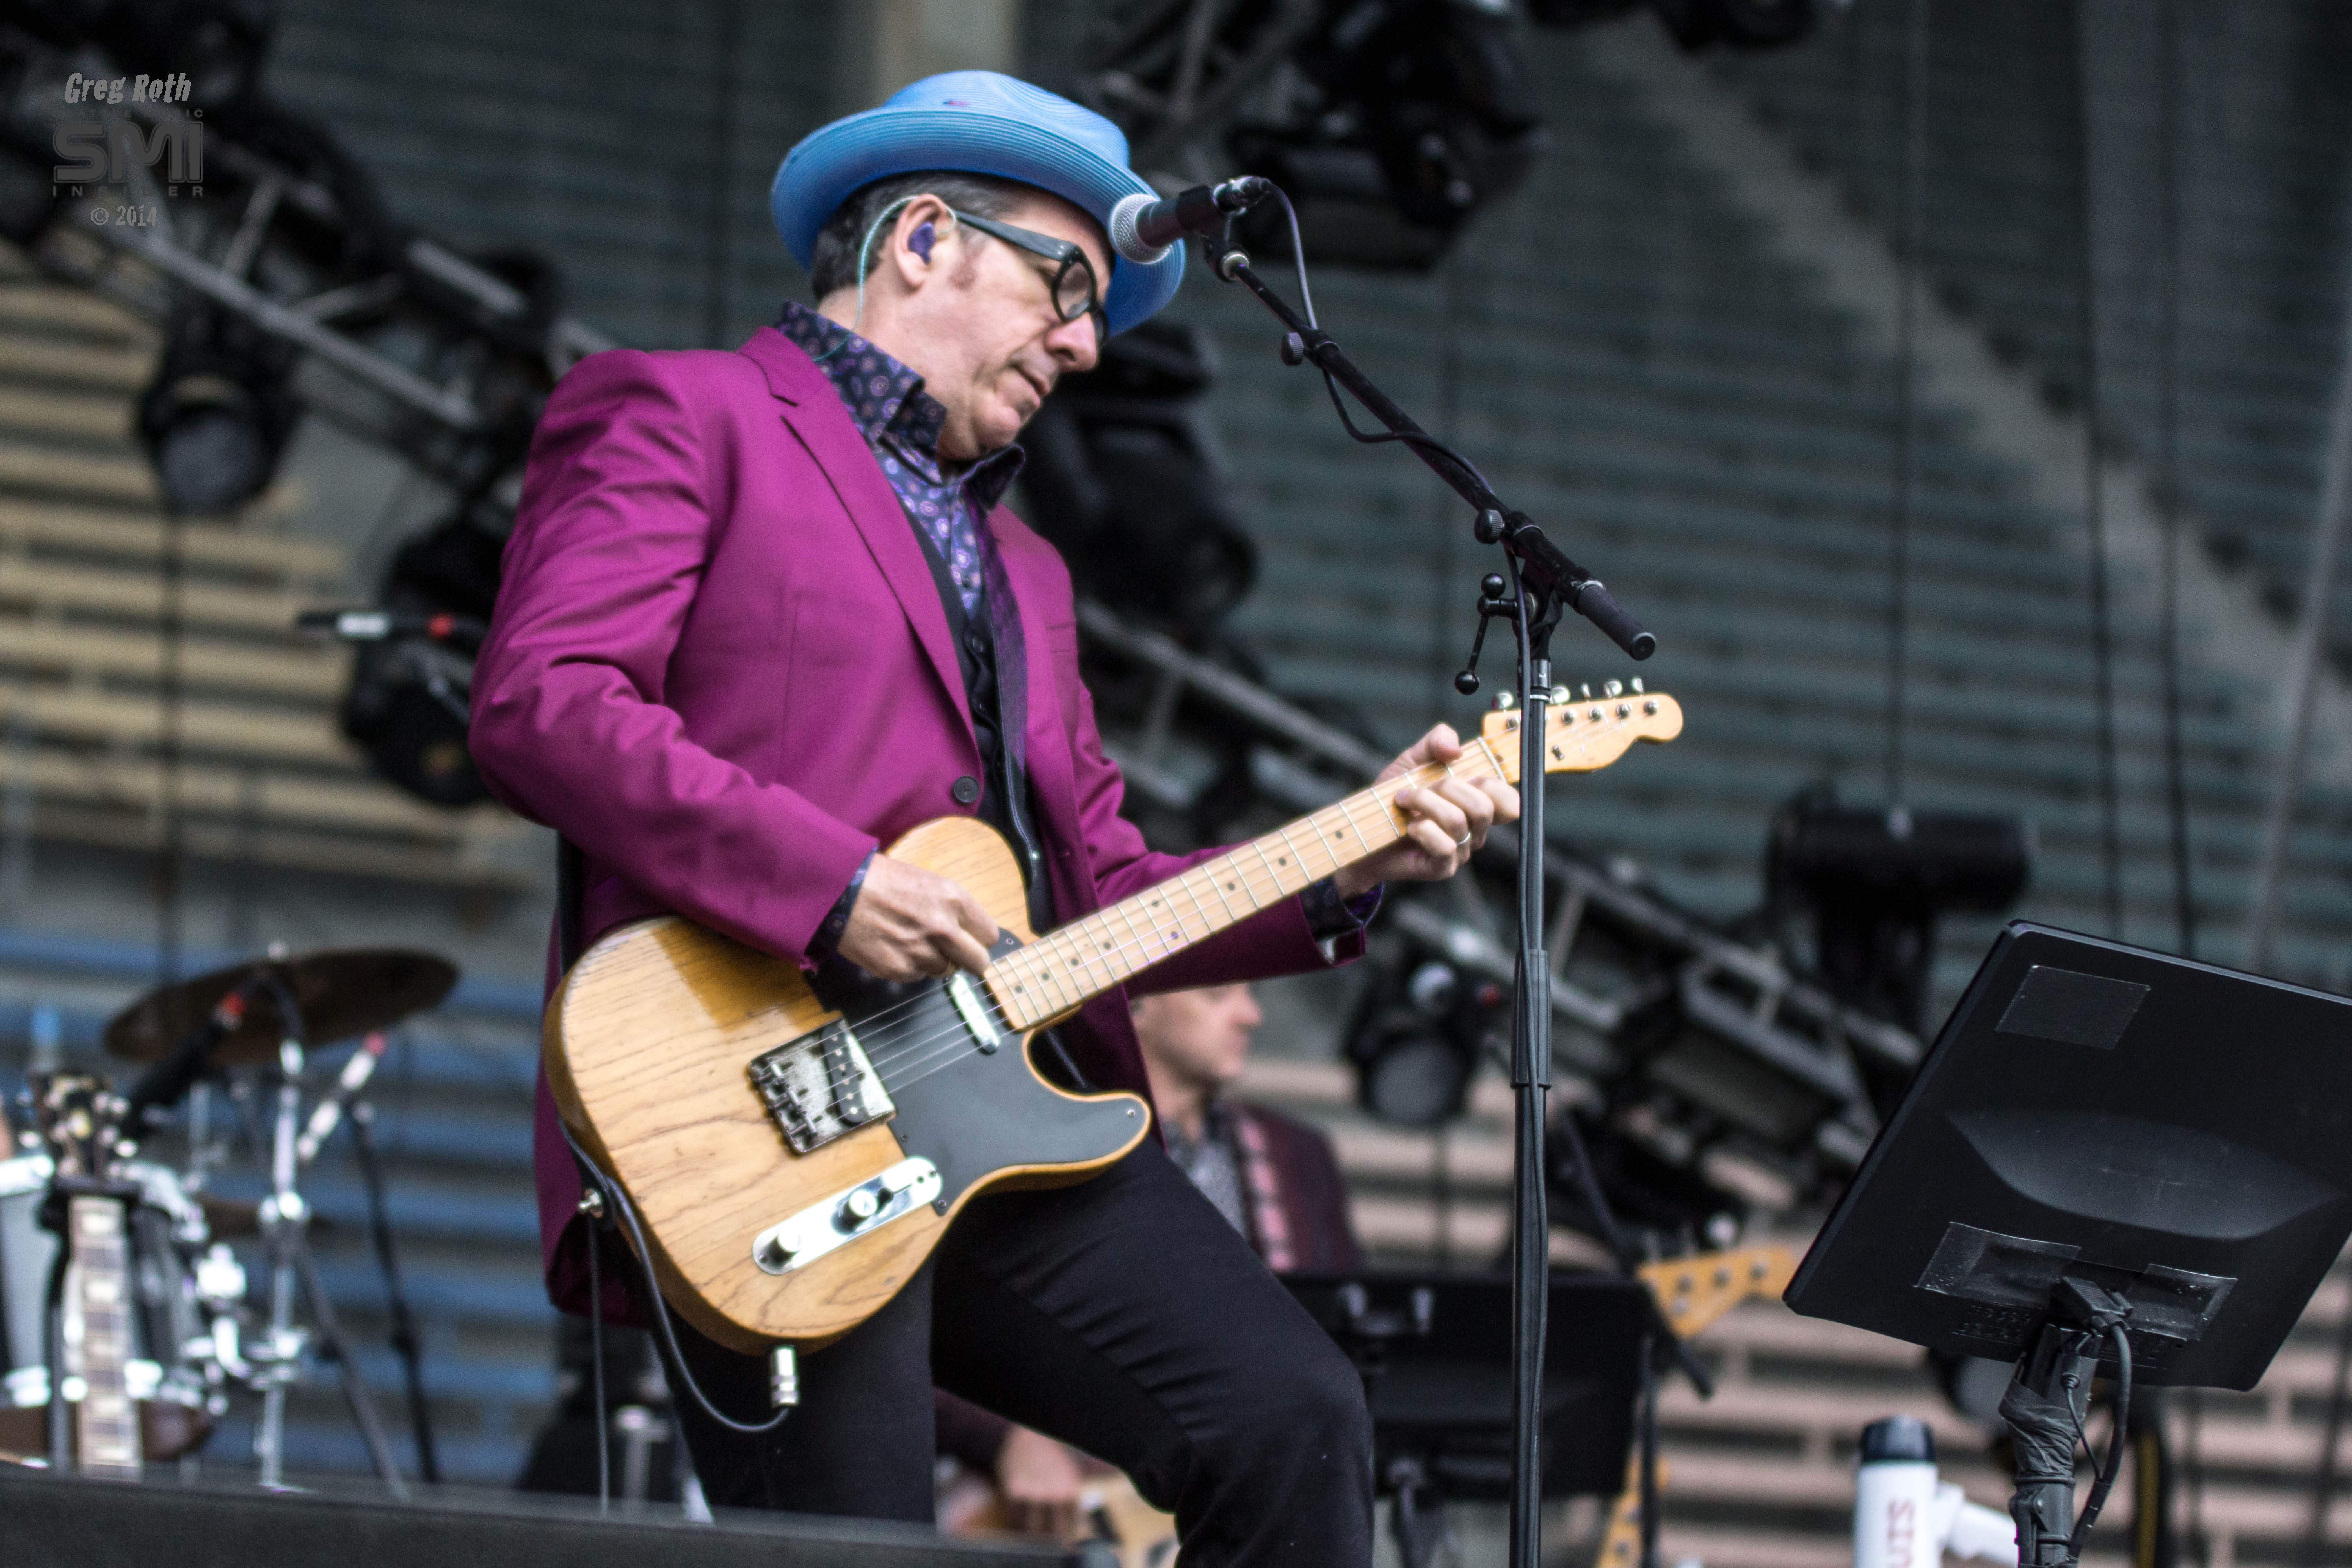 Elvis Costello Live @ Bumbershoot 2014 (Photo by Greg Roth)